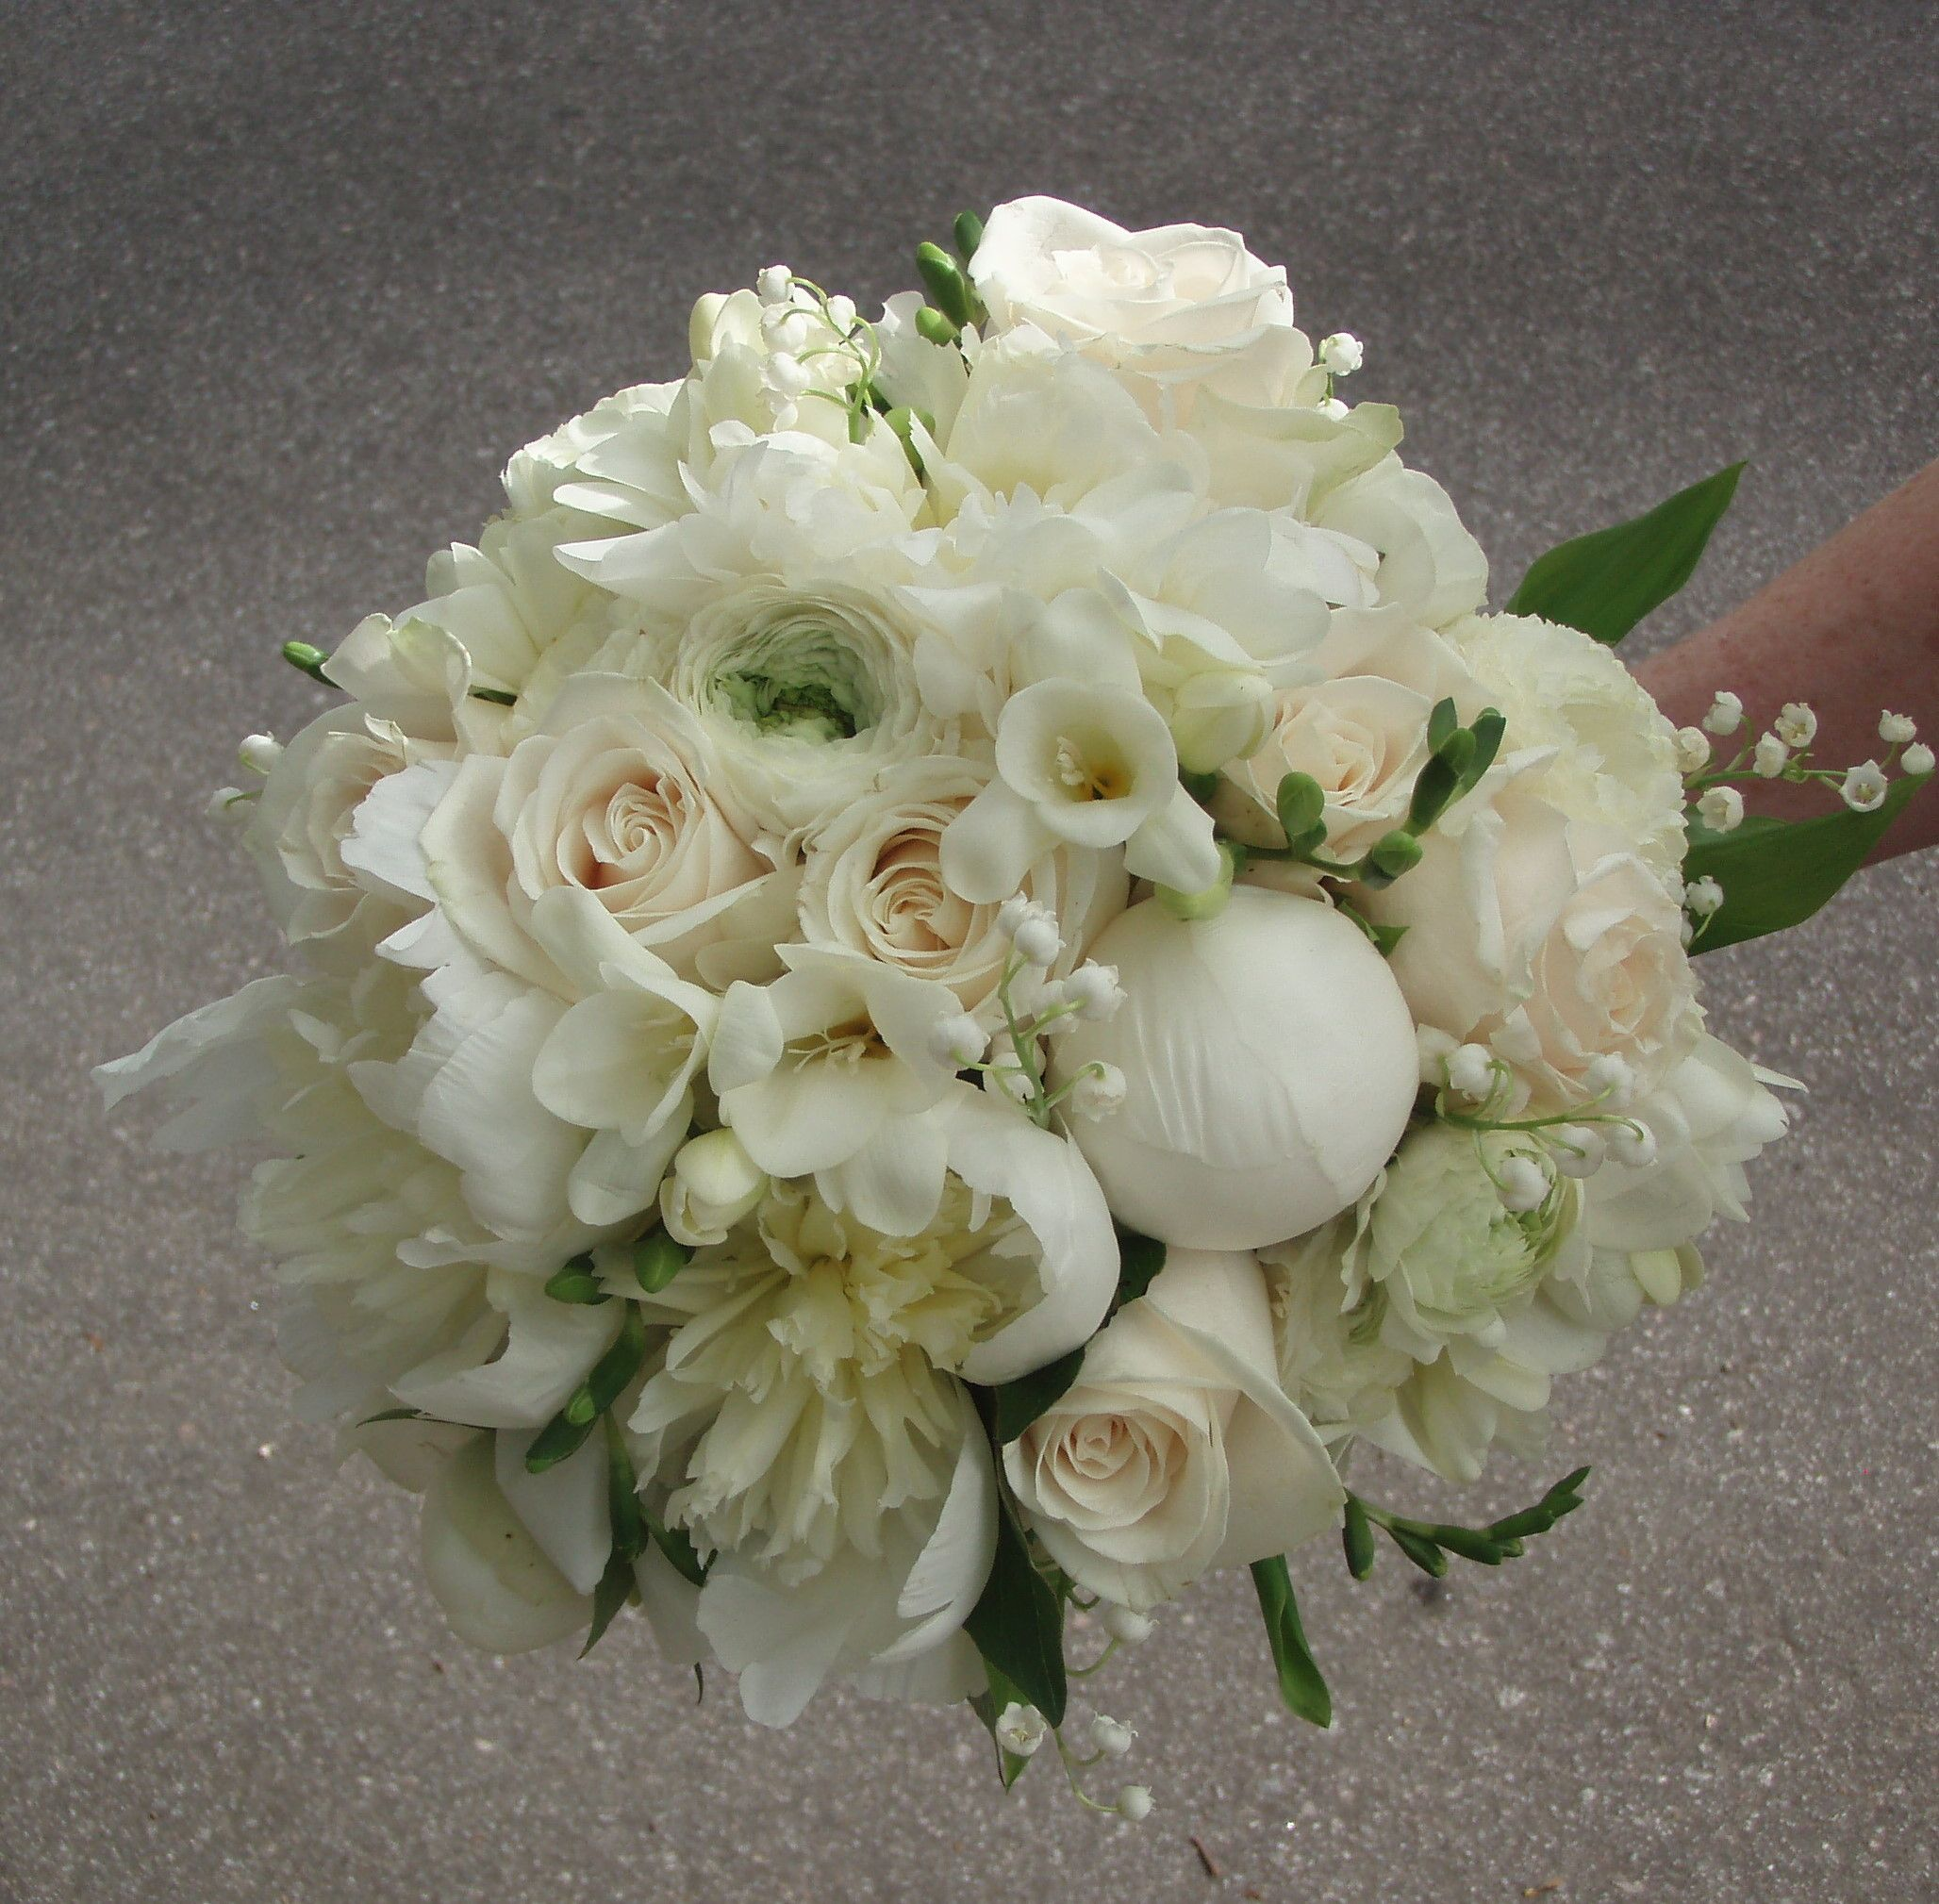 Lily Of The Valley Wedding Flowers: Peonies, Lily Of The Valley, Freesia, Ranunculas, Vendela